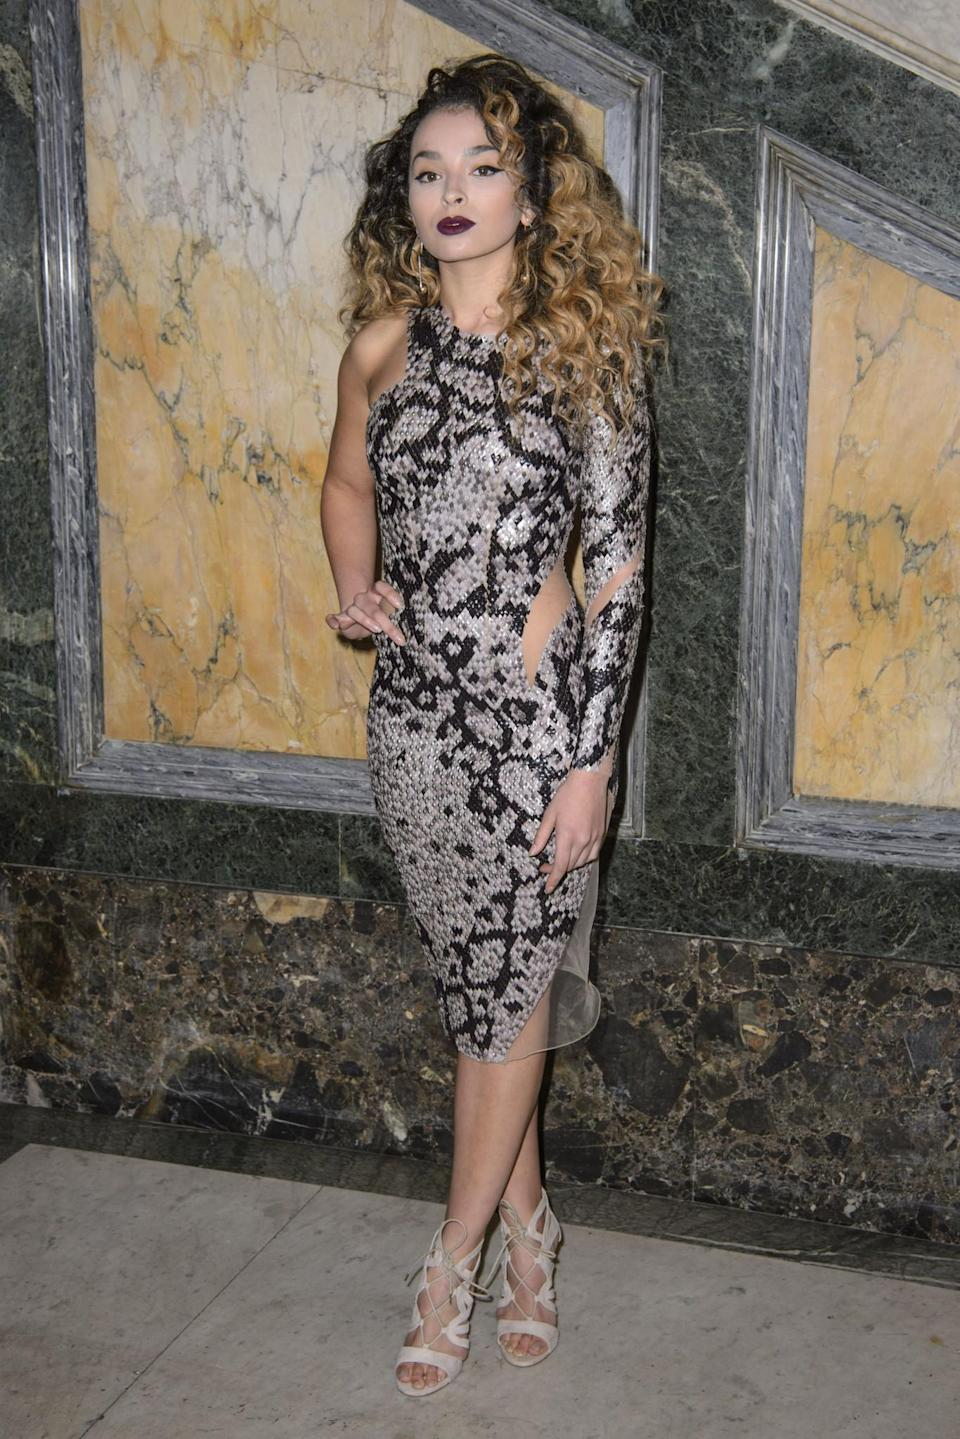 <p>Ella Eyre was stunning in snakeskin. <i>[Photo: PA]</i> </p>